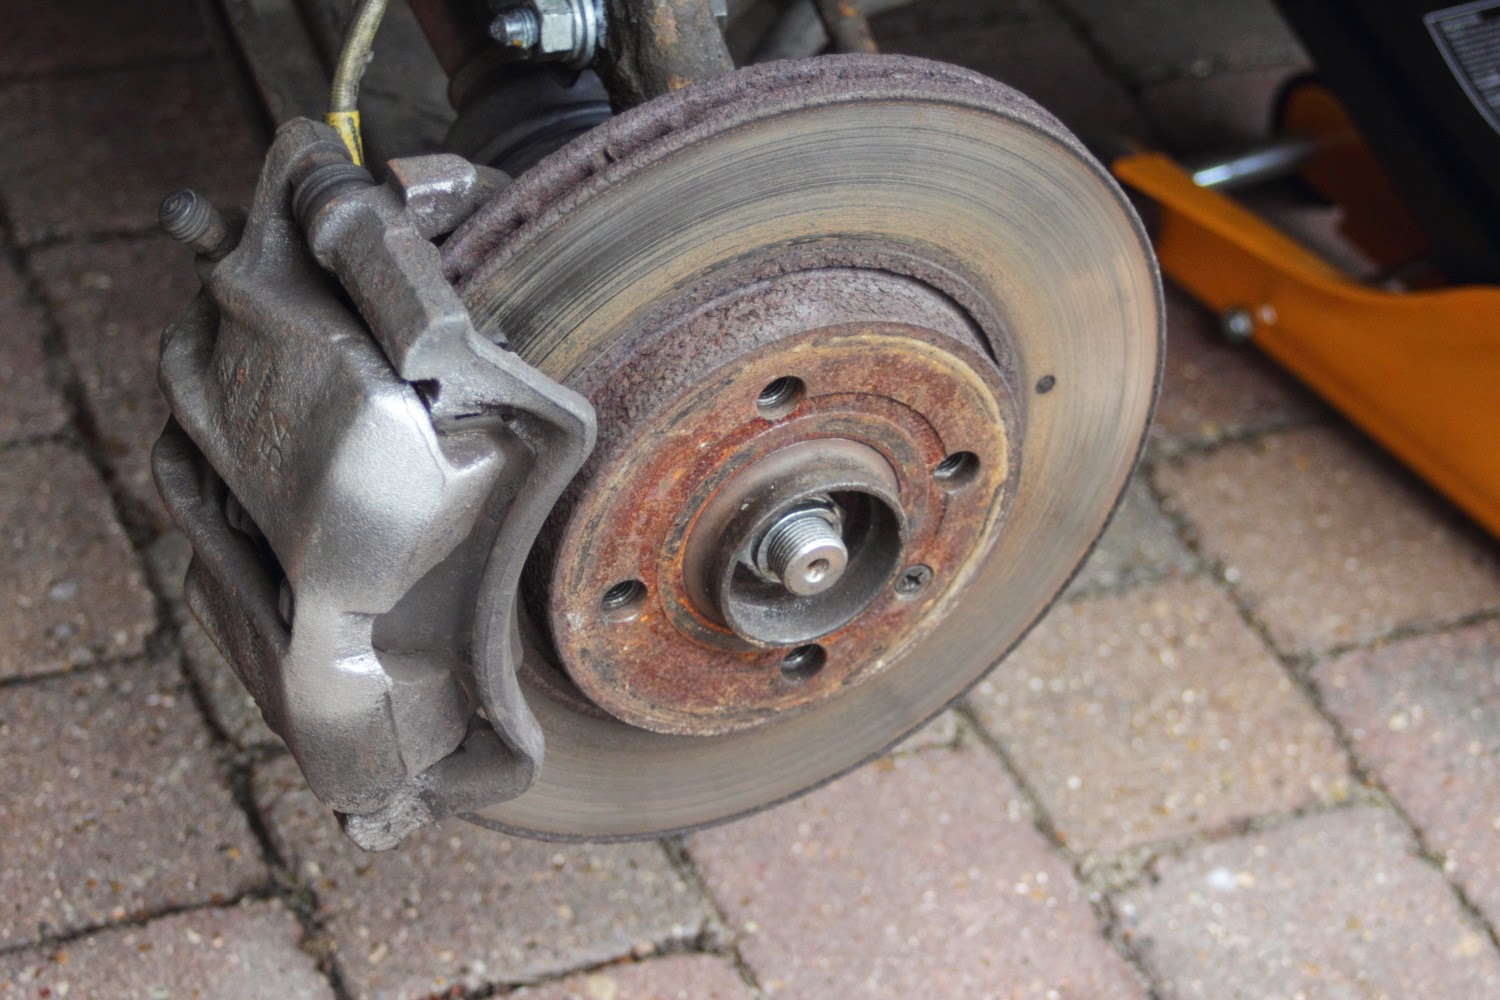 Old brake disc showing wear and rust